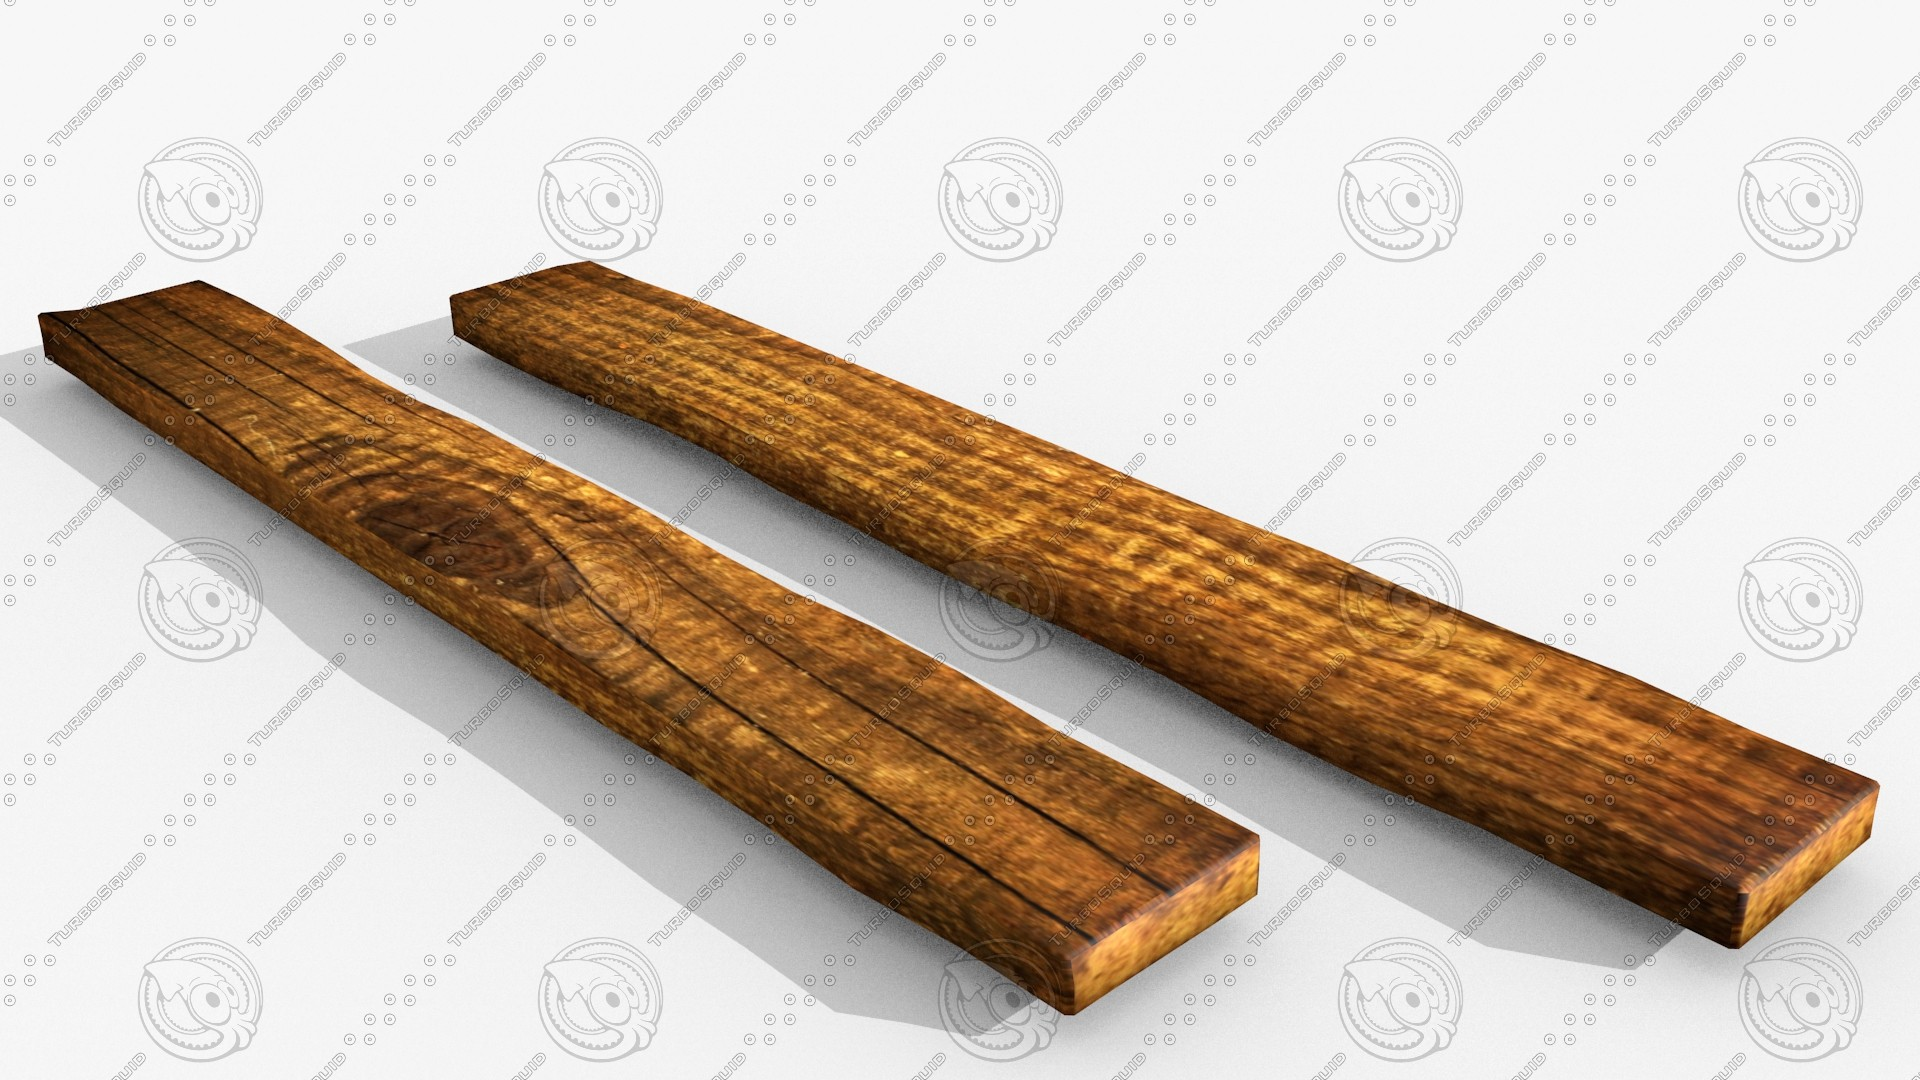 Marvelous photograph of 3d model fence assemble wooden with #BF7C0C color and 1920x1080 pixels